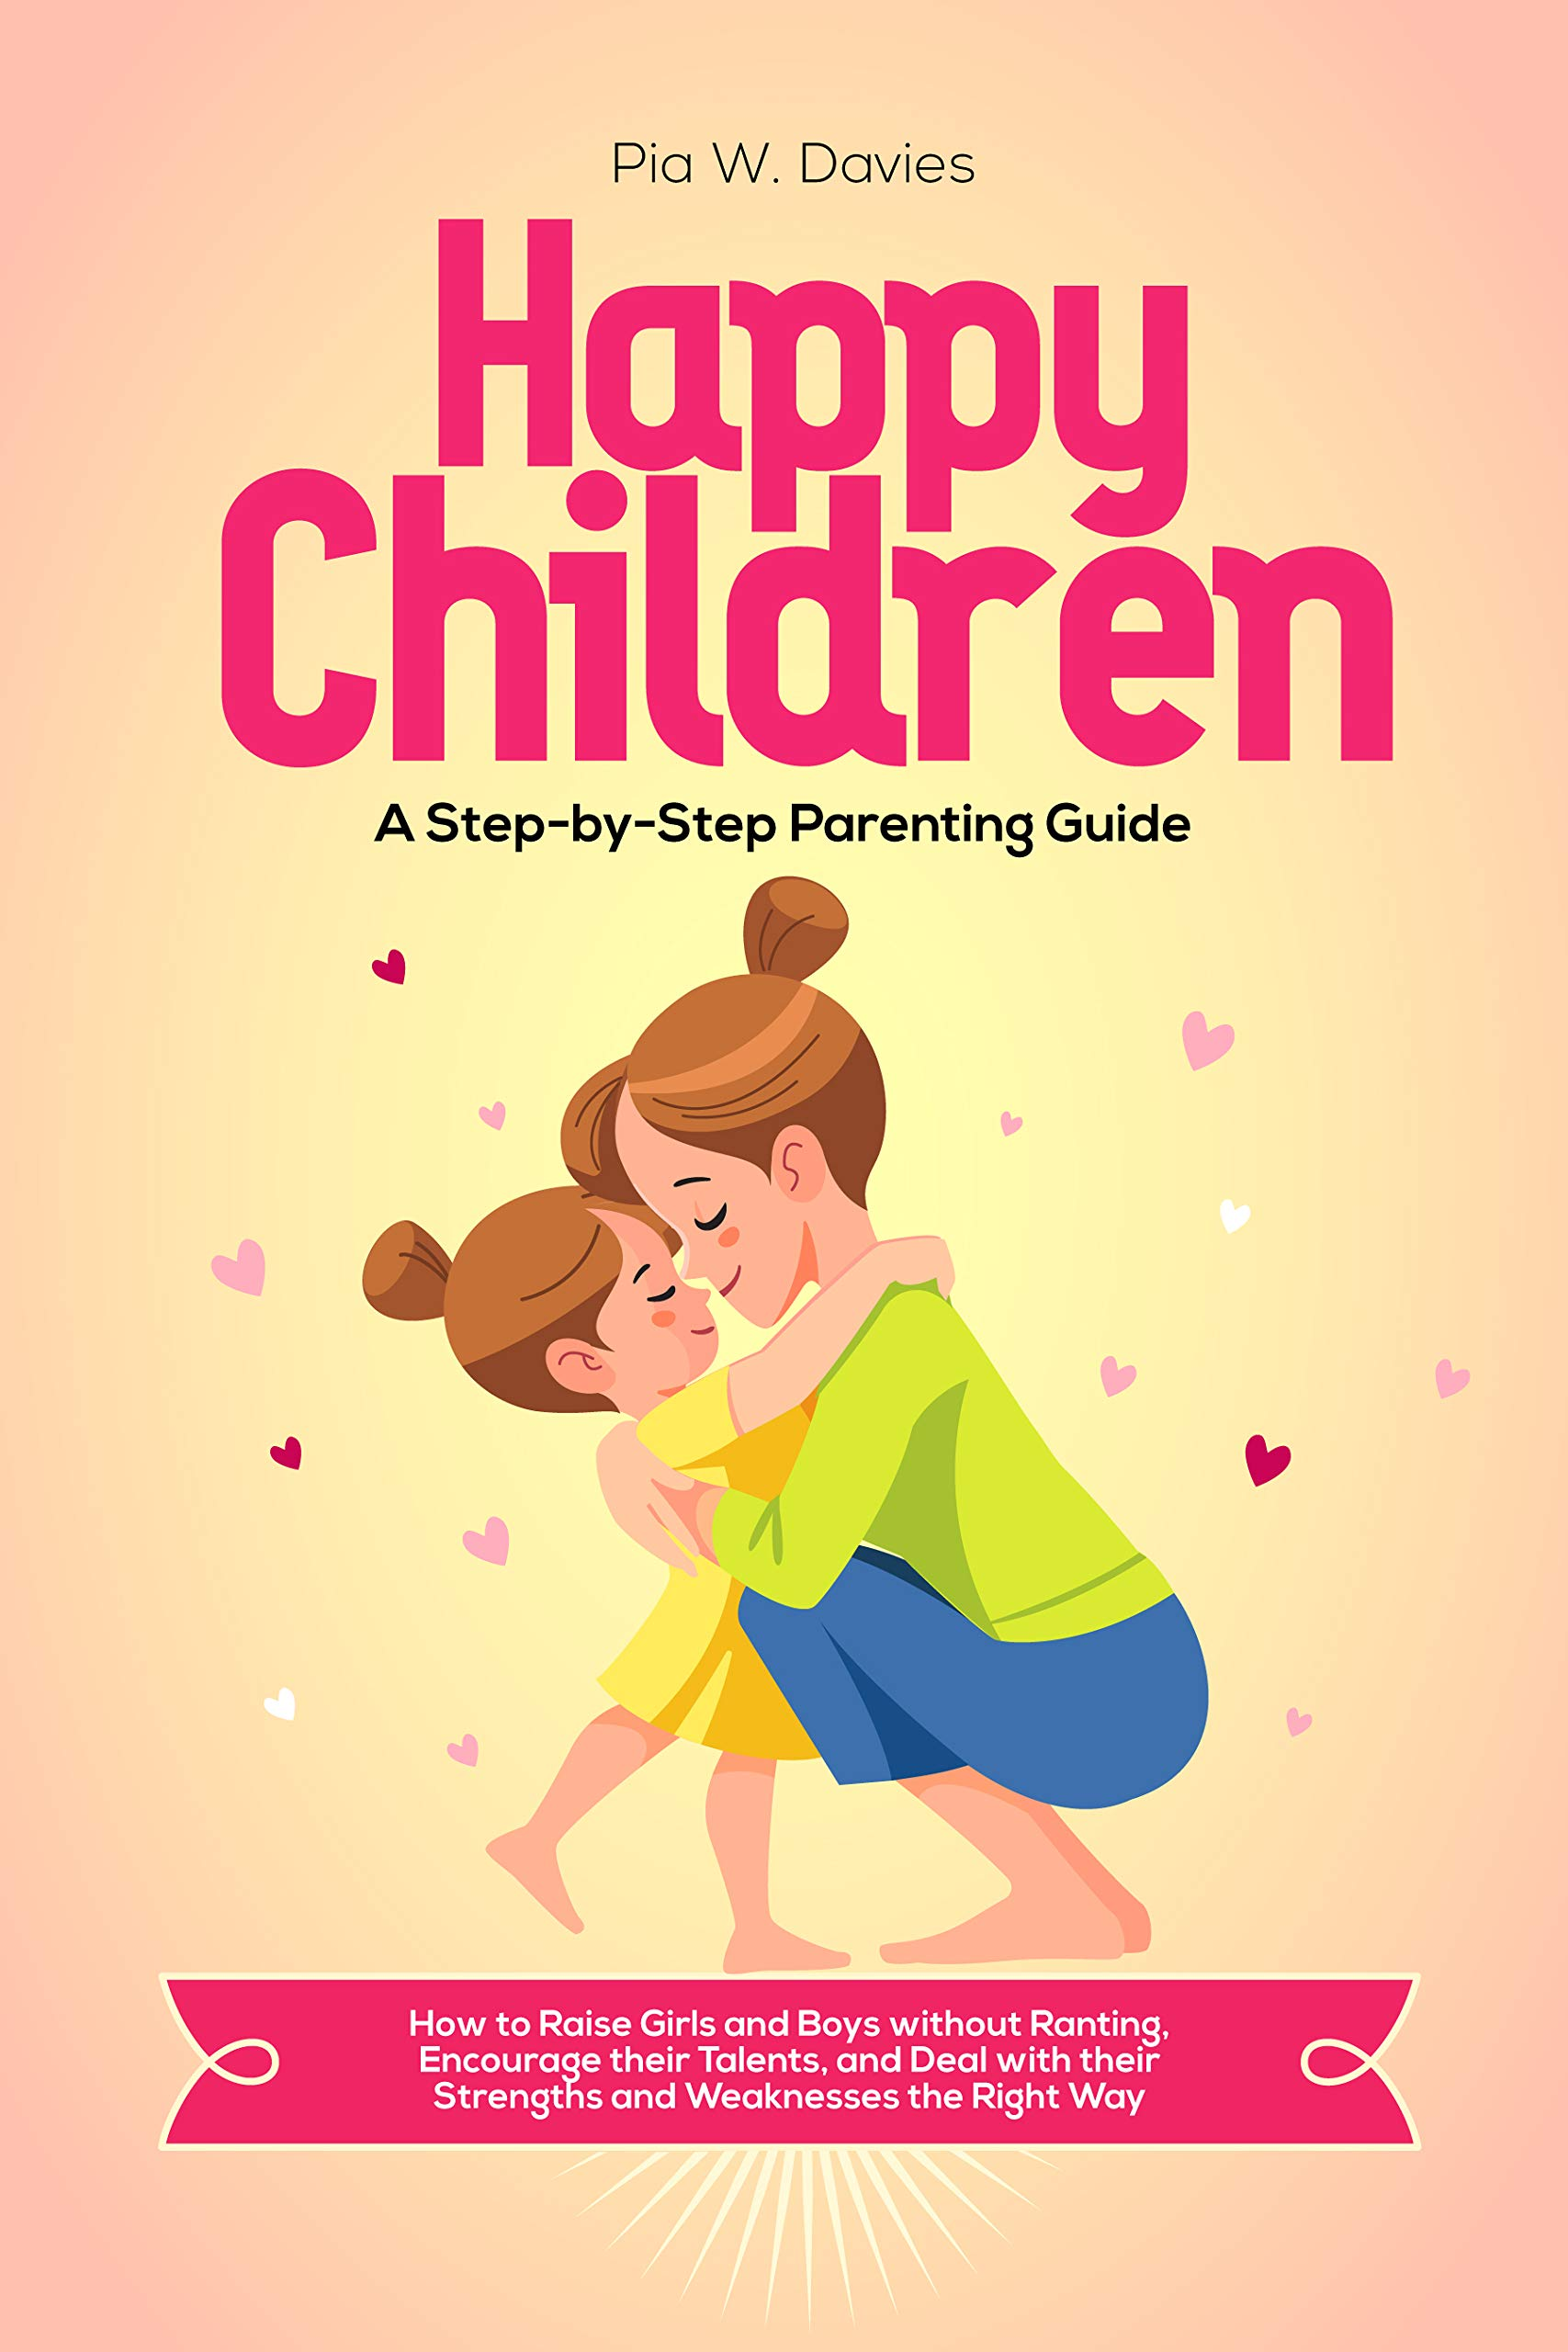 HAPPY CHILDREN - A Step-by-Step Parenting Guide: How to Raise Girls and Boys without Ranting, Encourage their Talents, and Deal with their Strengths and Weaknesses the Right Way